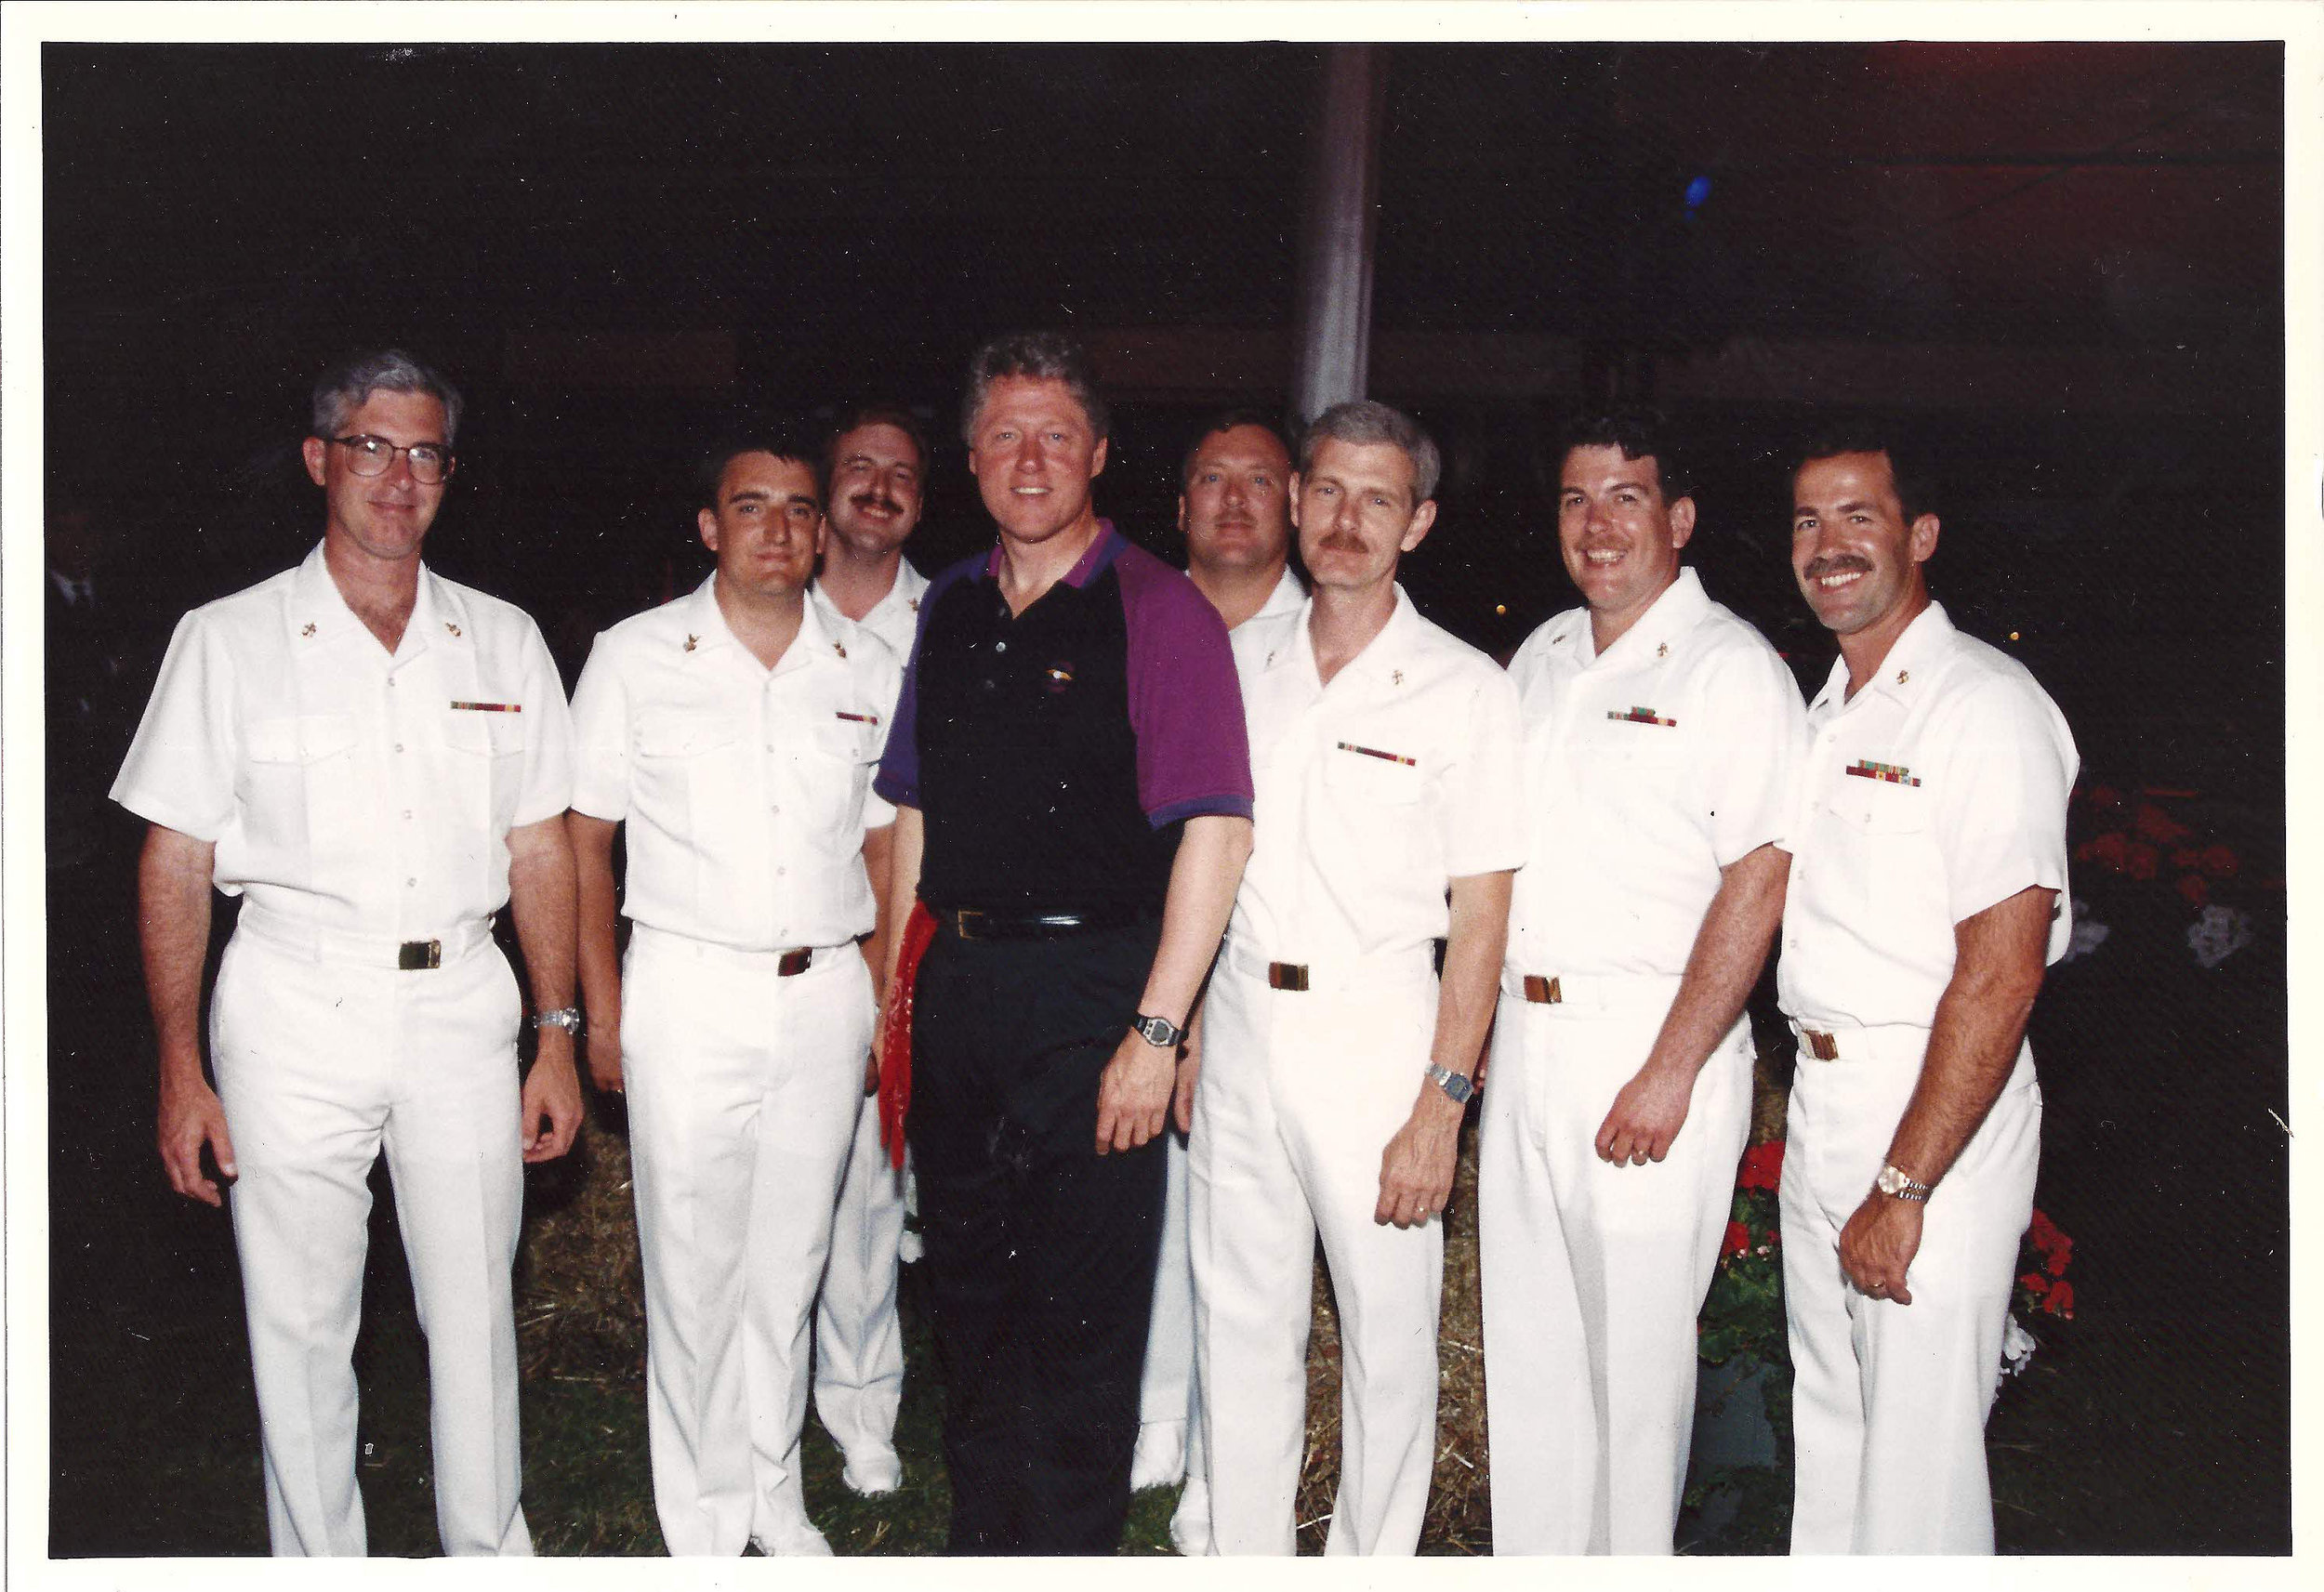 Wayne Taylor US Navy Band Country Current with Former President William Clinton